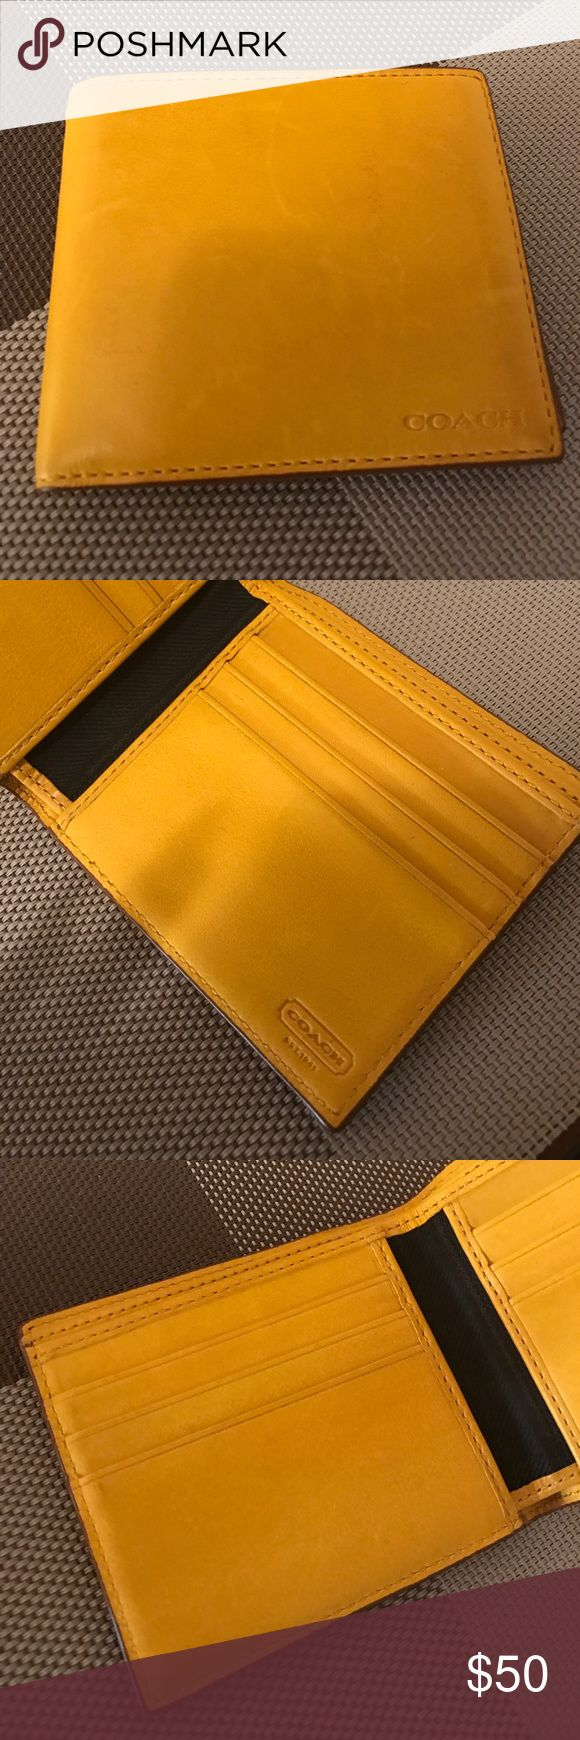 "Men'n Coach Wallet Yellow (Flax) sports calf leather, 100% Coach Authentic Men's wallet.  Wallet has 4 Card Slots & slip in slot on each side.Full Length Double Billfold. Coach name imprinted on inside of wallet. Approx Measurements: 4.25"" (L) x 3.75"". Excellent quality and condition. Coach Bags Wallets"